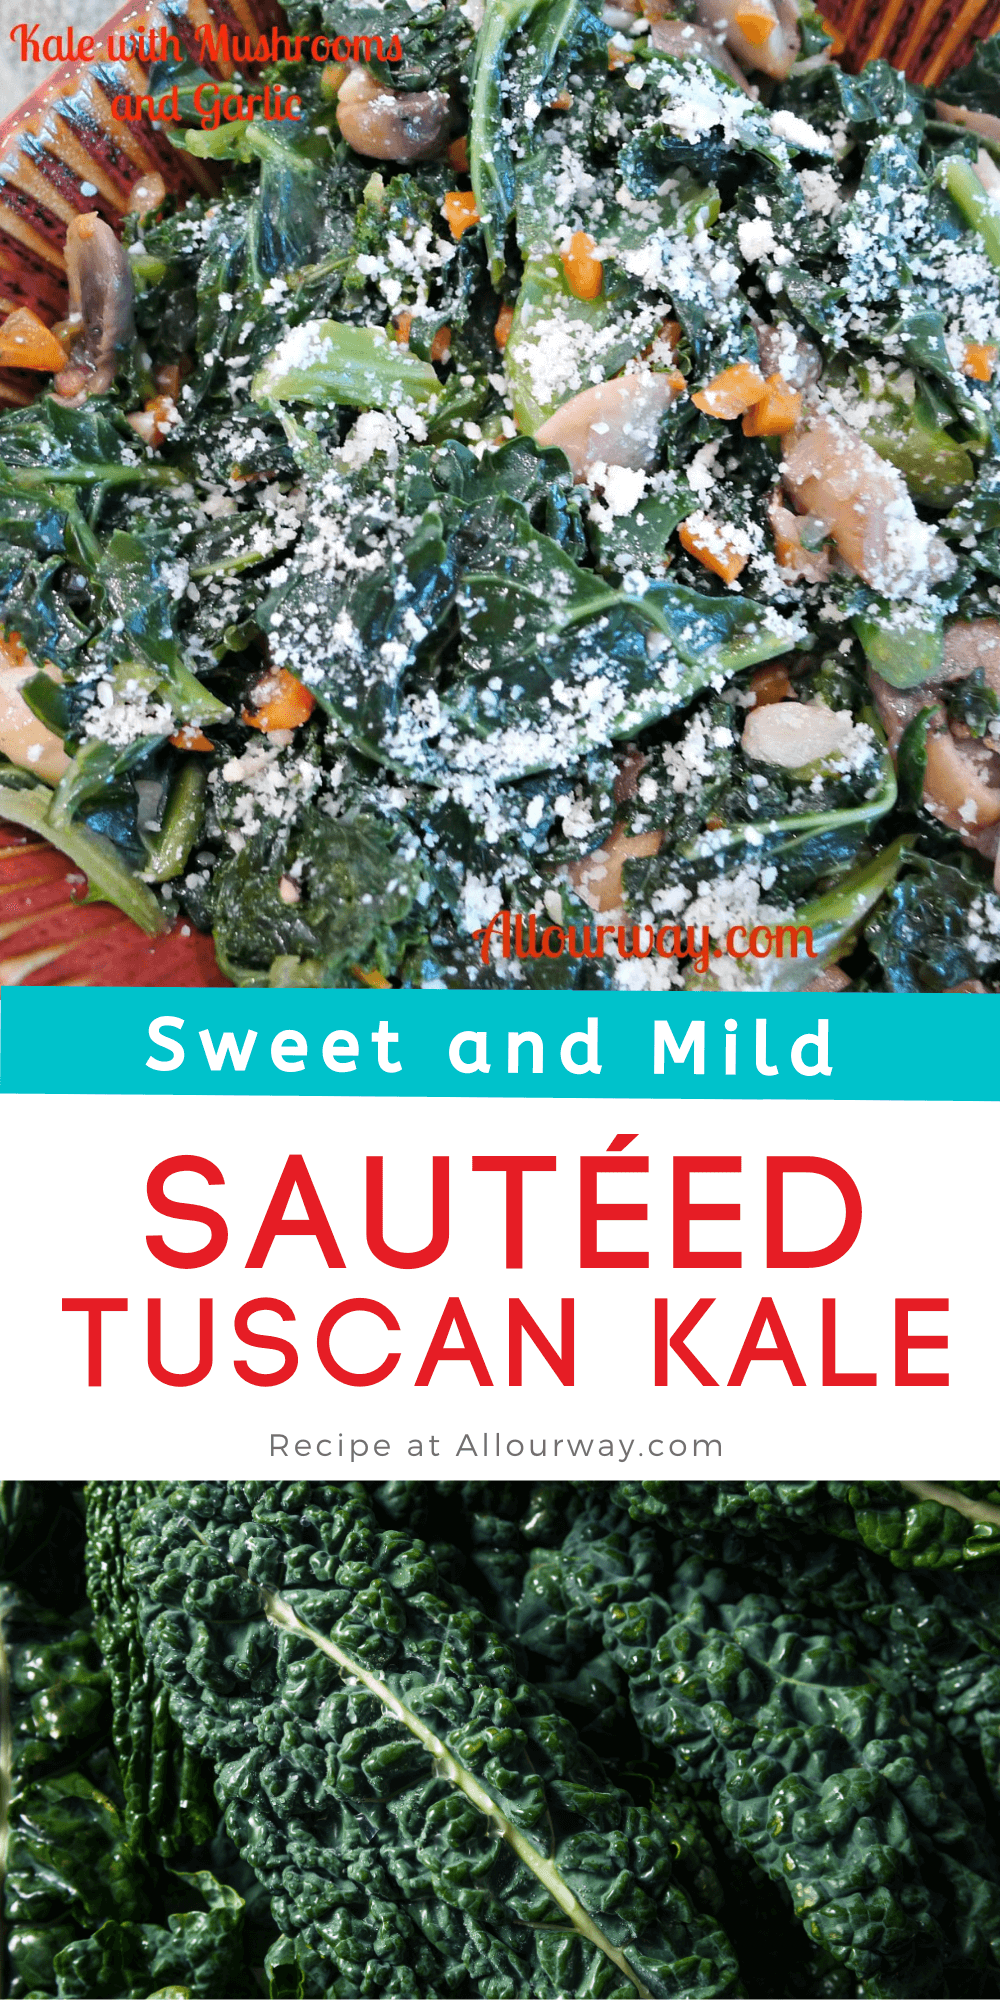 Lacinato Tuscan Kale is a popular Italian vegetable that is sweeter and more tender than regular kale. In this recipe we sauté it in extra virgin olive oil with fragrant garlic, earthy rich mushroom, and spicy red pepper flakes. Then we braise it with chicken or vegetable broth until the kale wilts. We finish the cavalo nero with fresh lemon juice and parmesan cheese. A delicious vegetable side that the whole family will love.